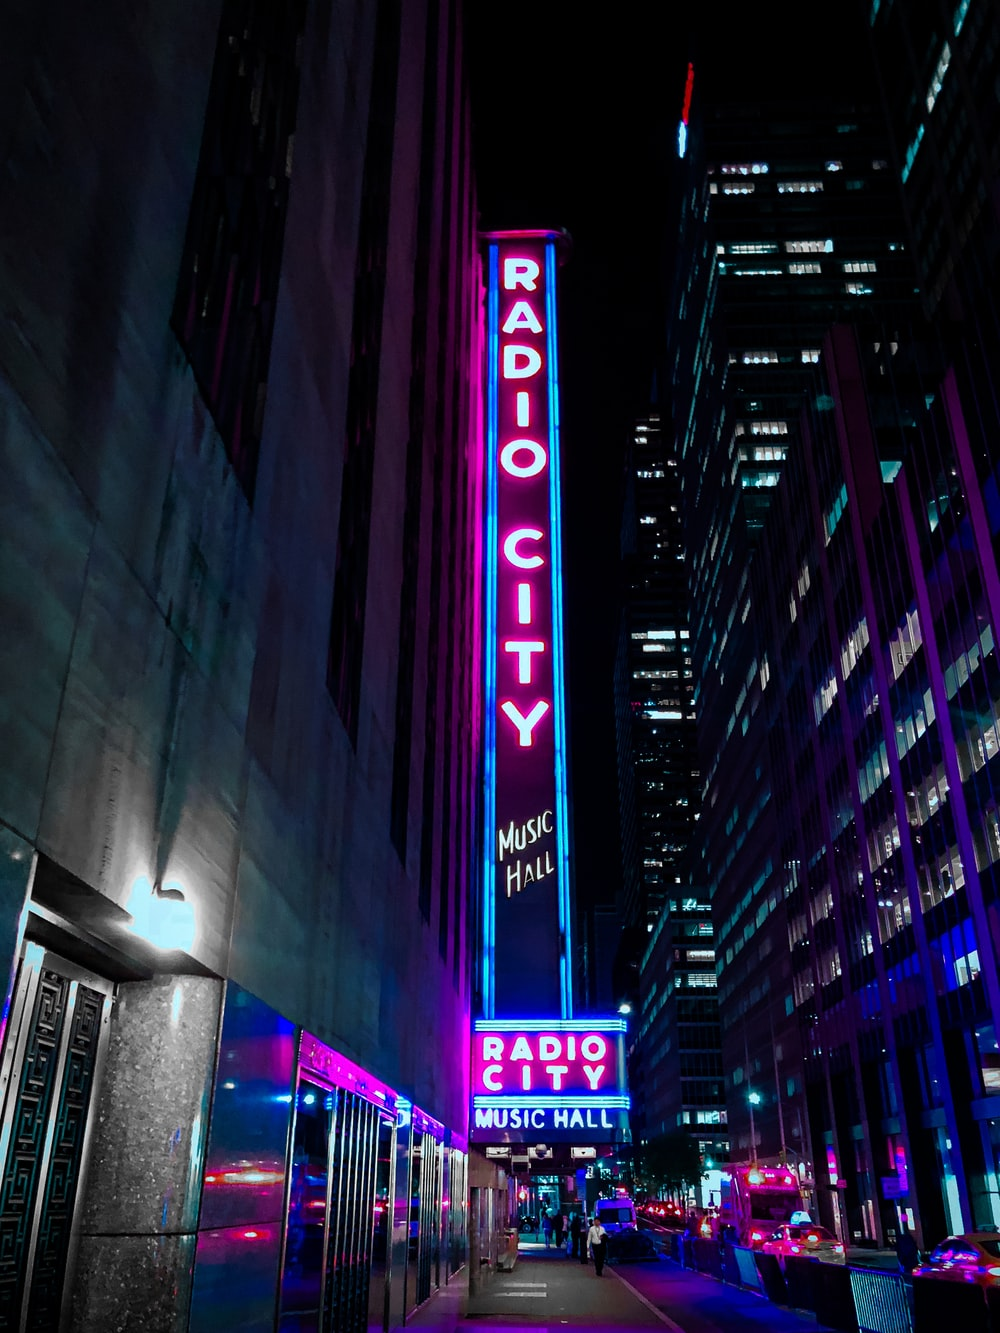 500 Neon City Pictures Download Free Images On Unsplash